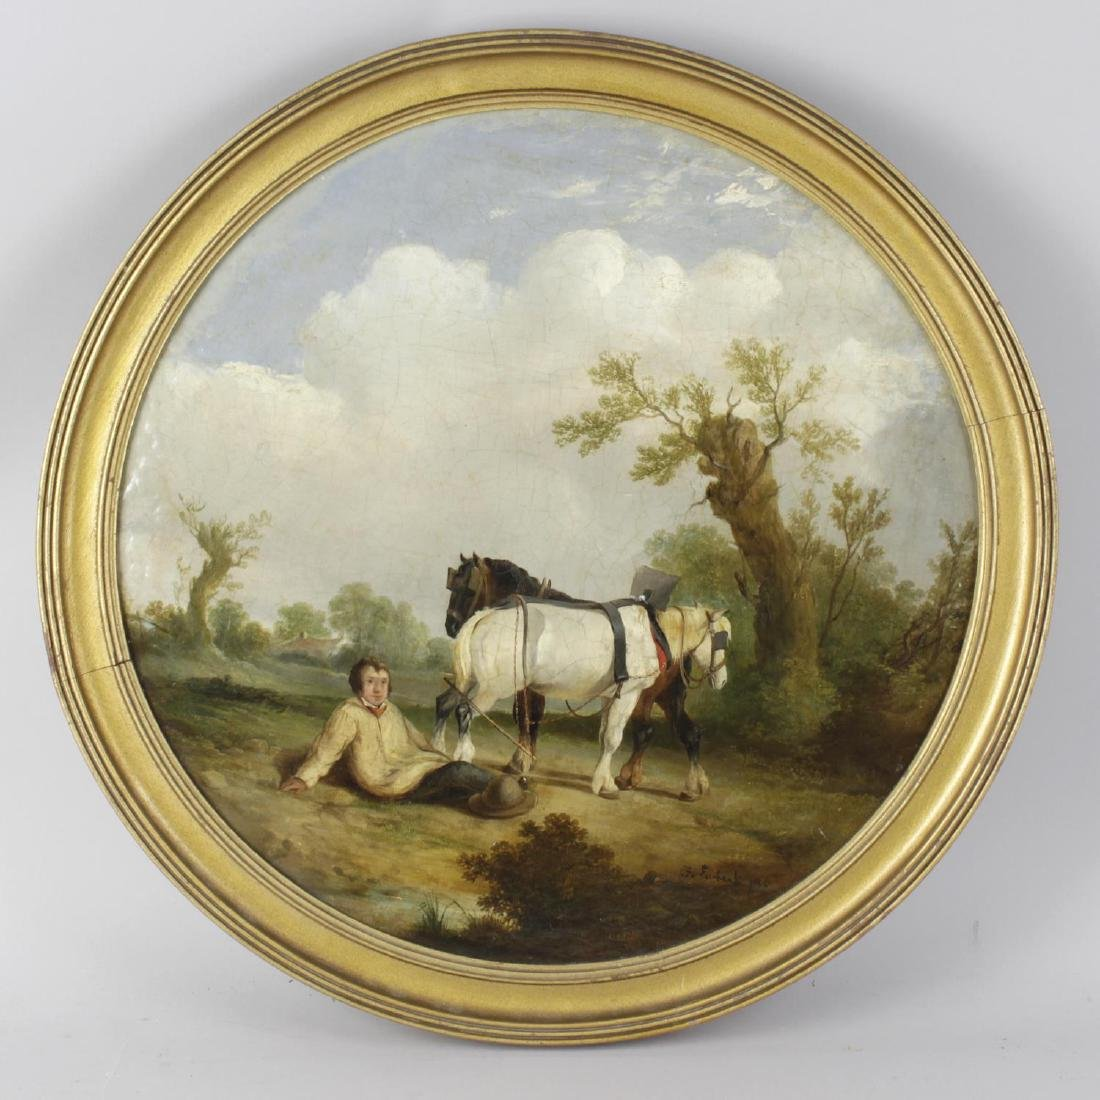 F Ewbank (19th century), a circular oil painting on